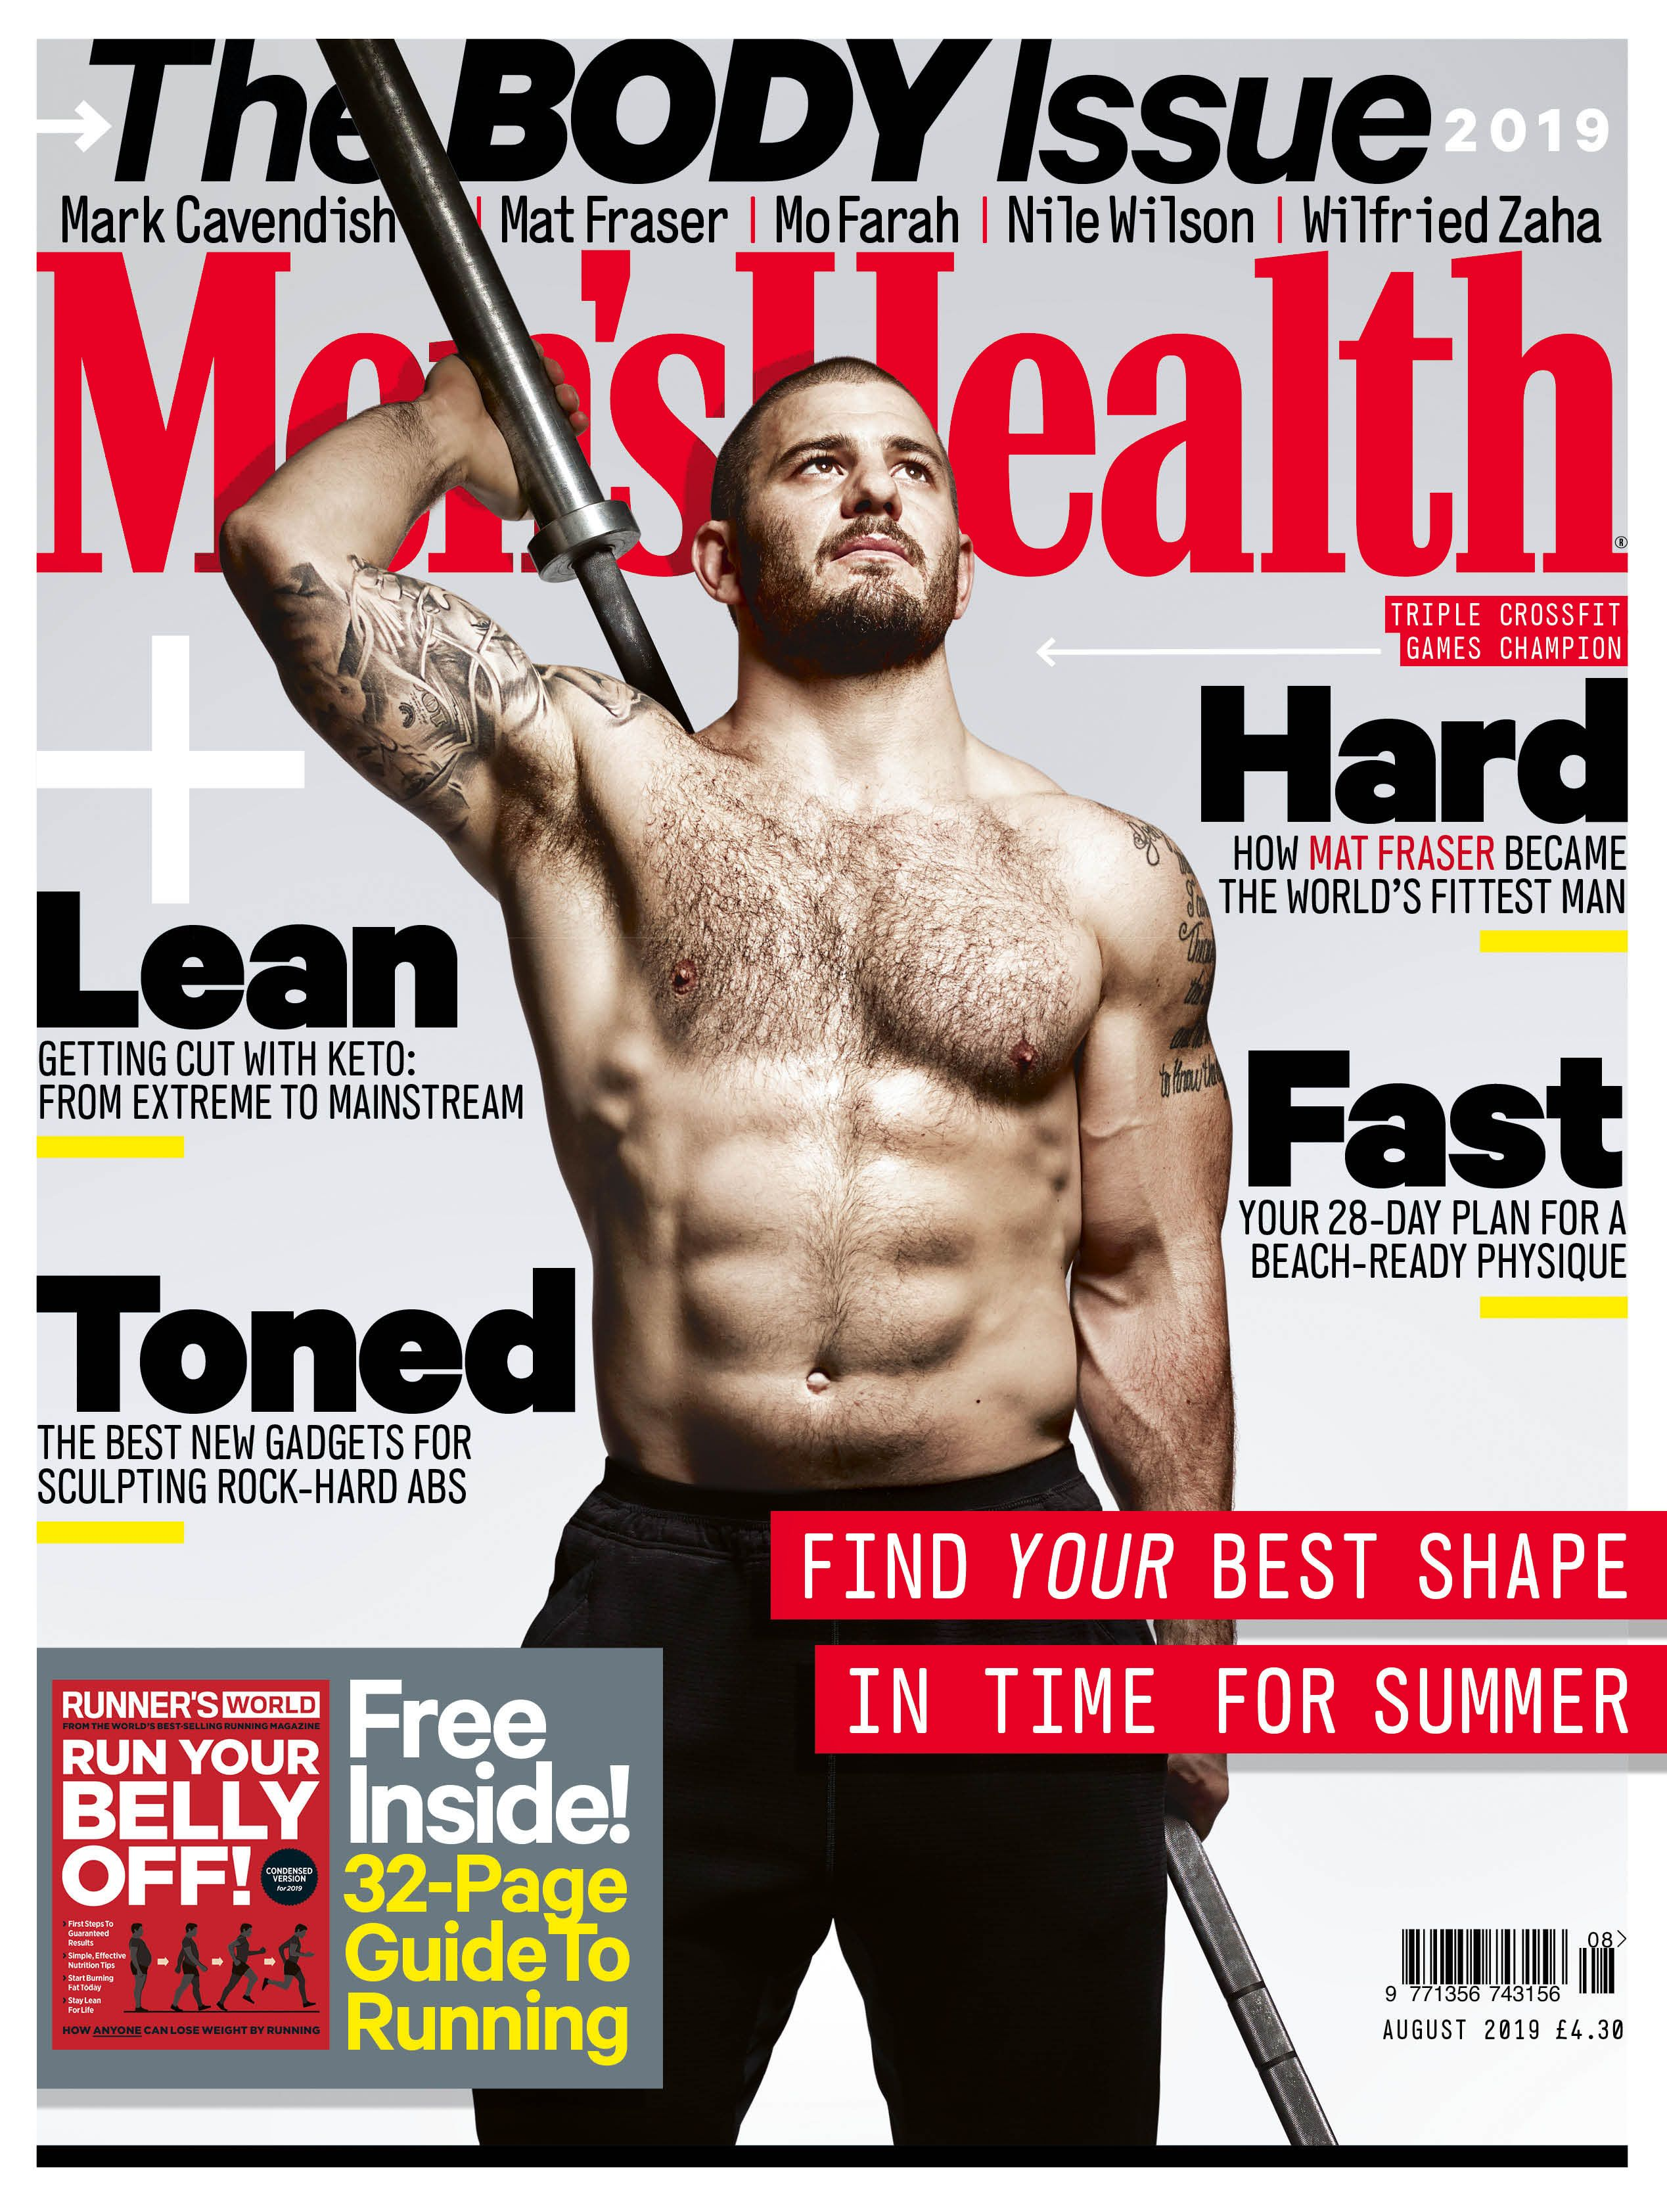 4 Reasons to Buy the August Issue of Men's Health